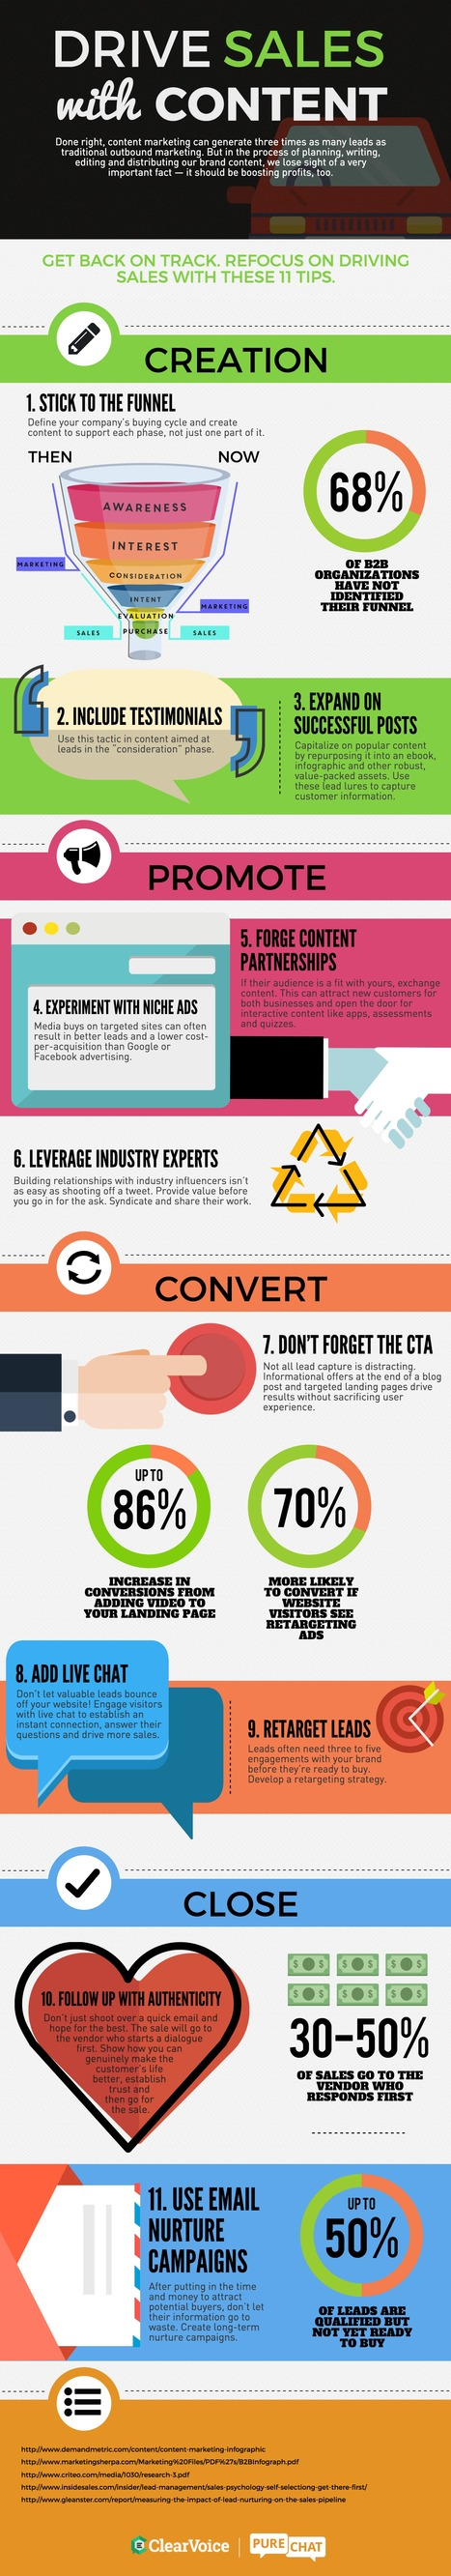 How to Drive Sales with Content Marketing #Infographic | MarketingHits | Scoop.it